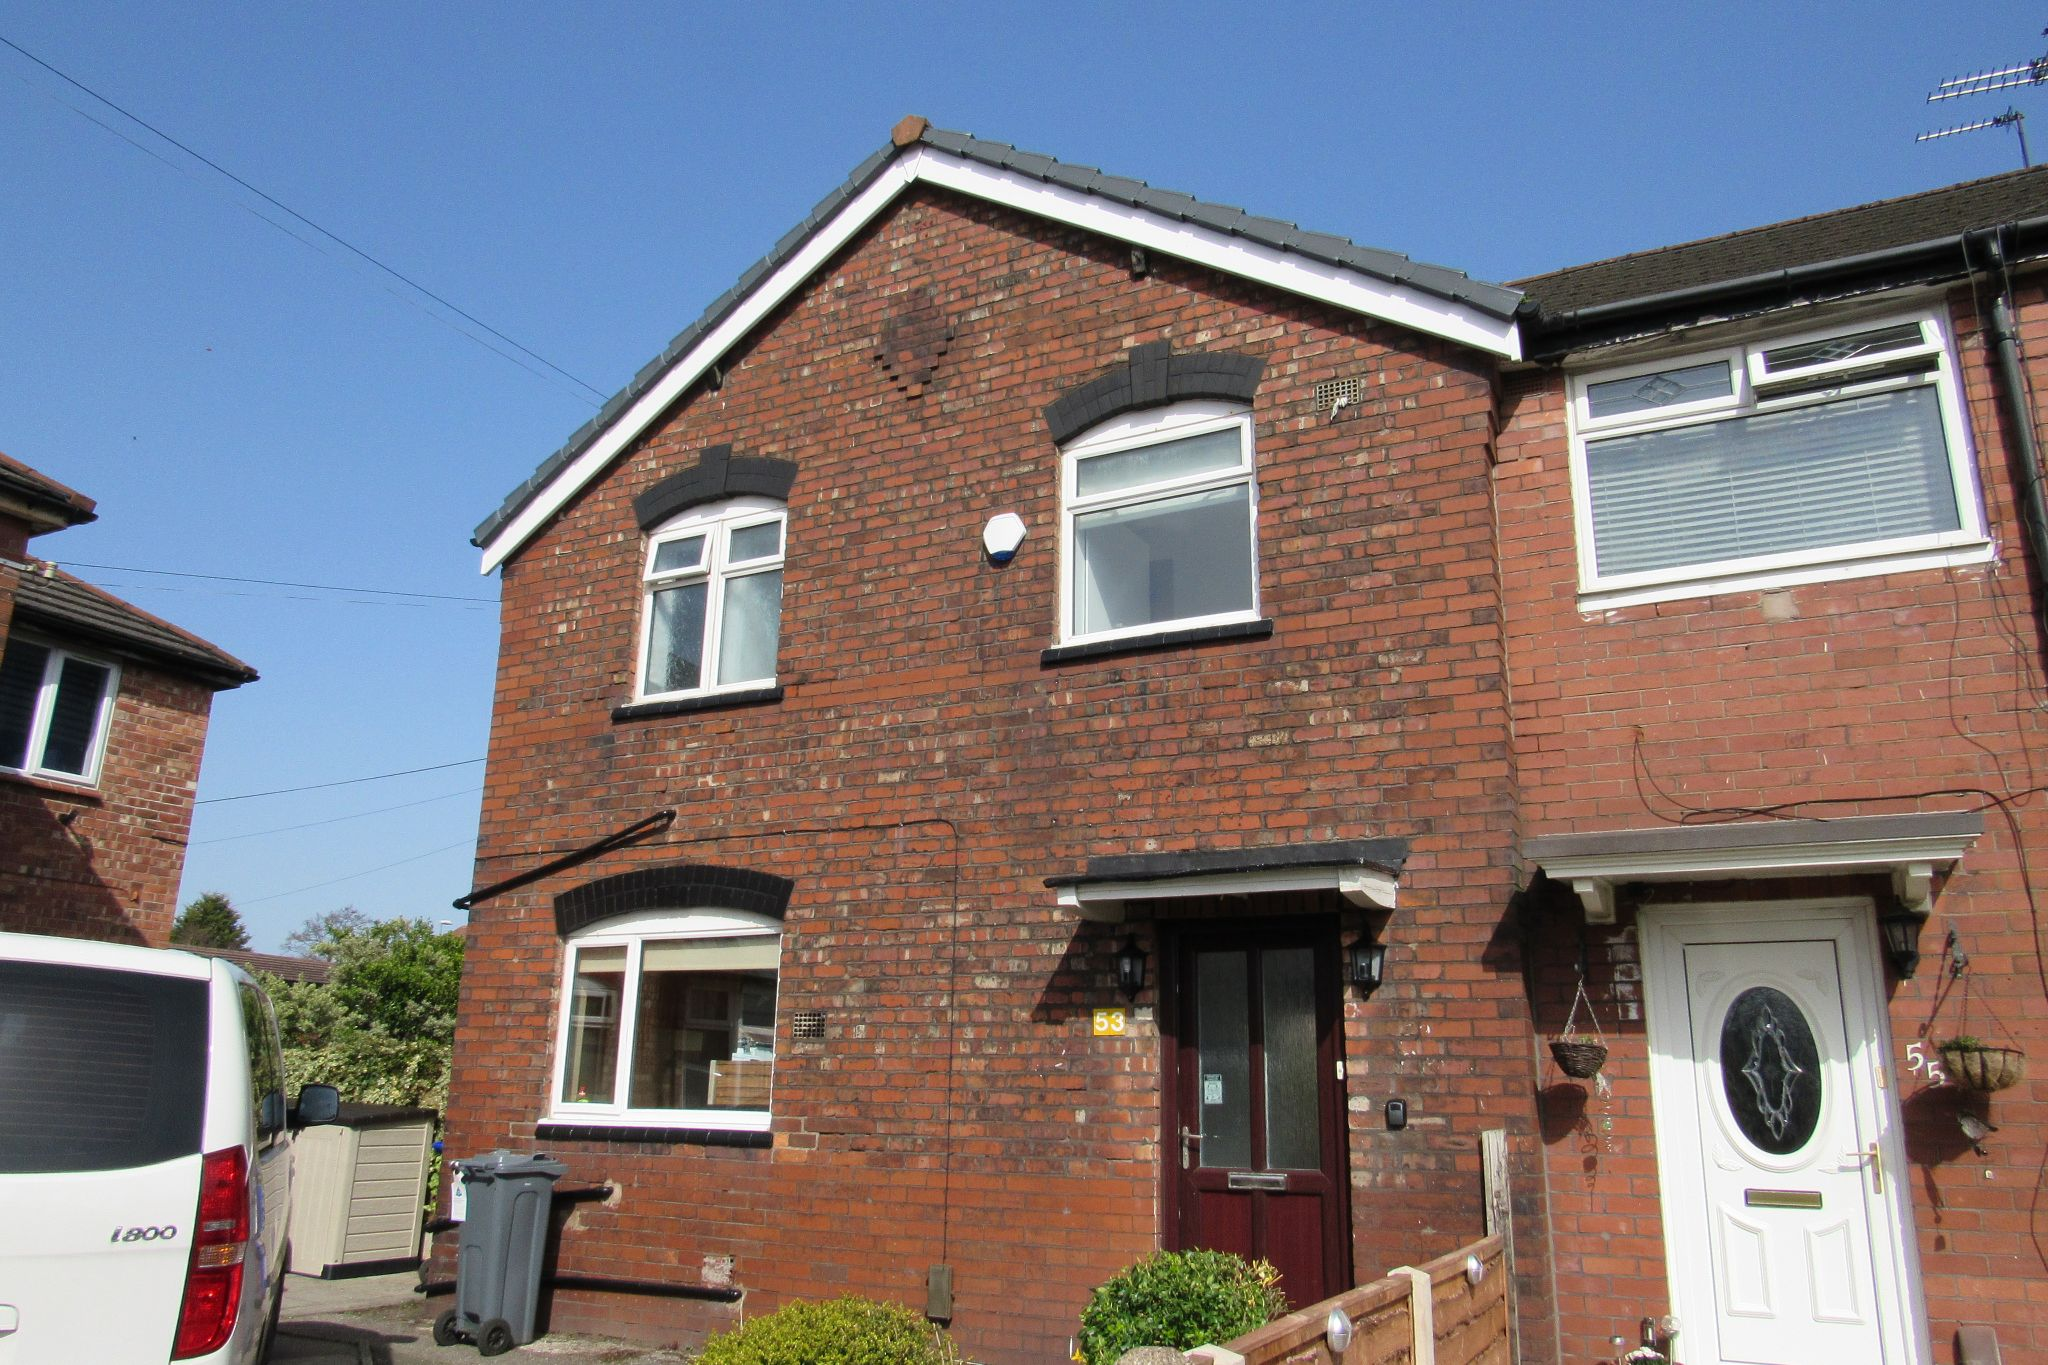 3 bedroom end terraced house SSTC in Manchester - Photograph 6.